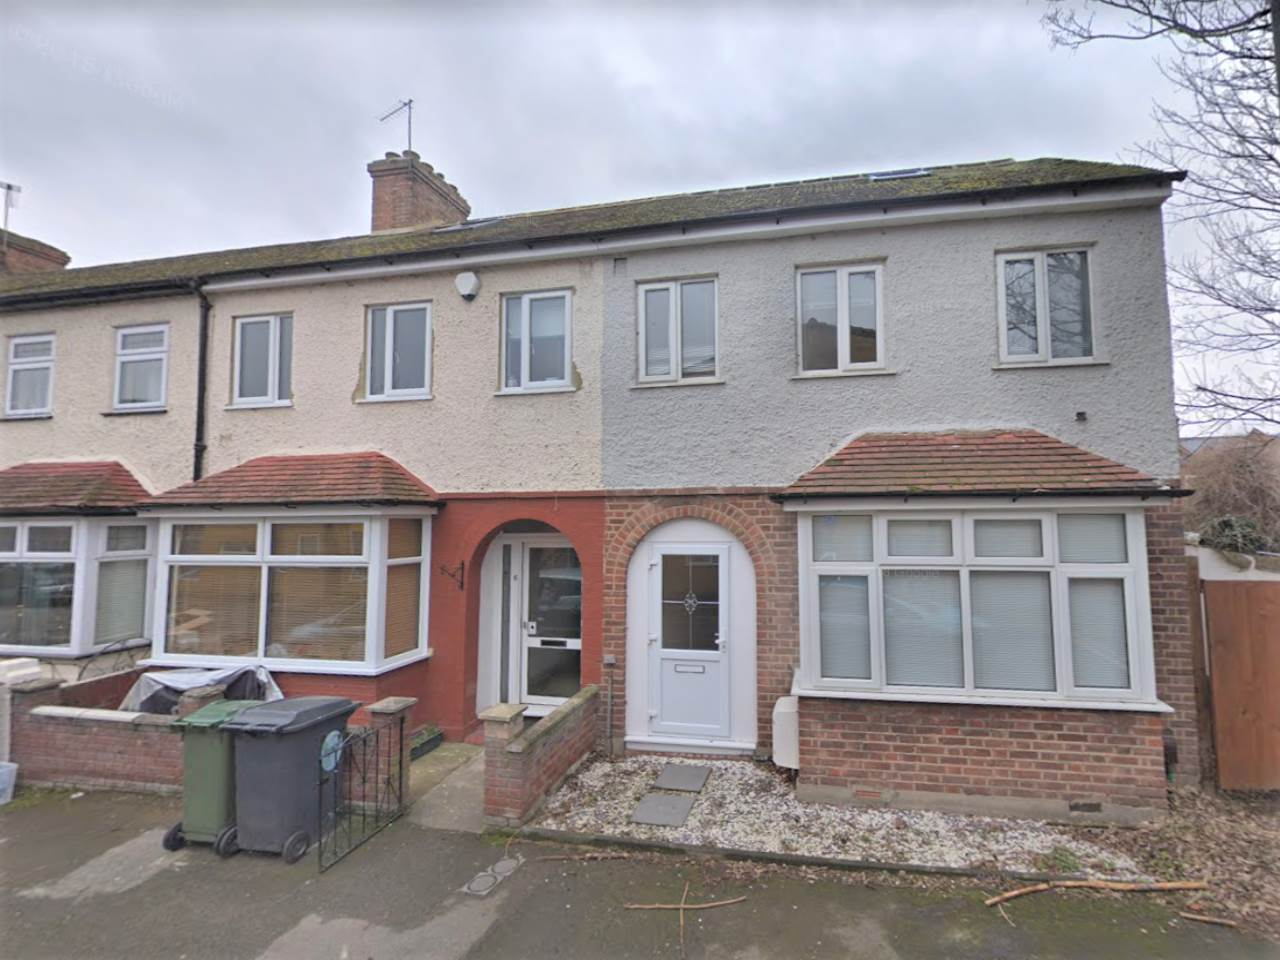 5 bed house to rent in Walthamstow, E17